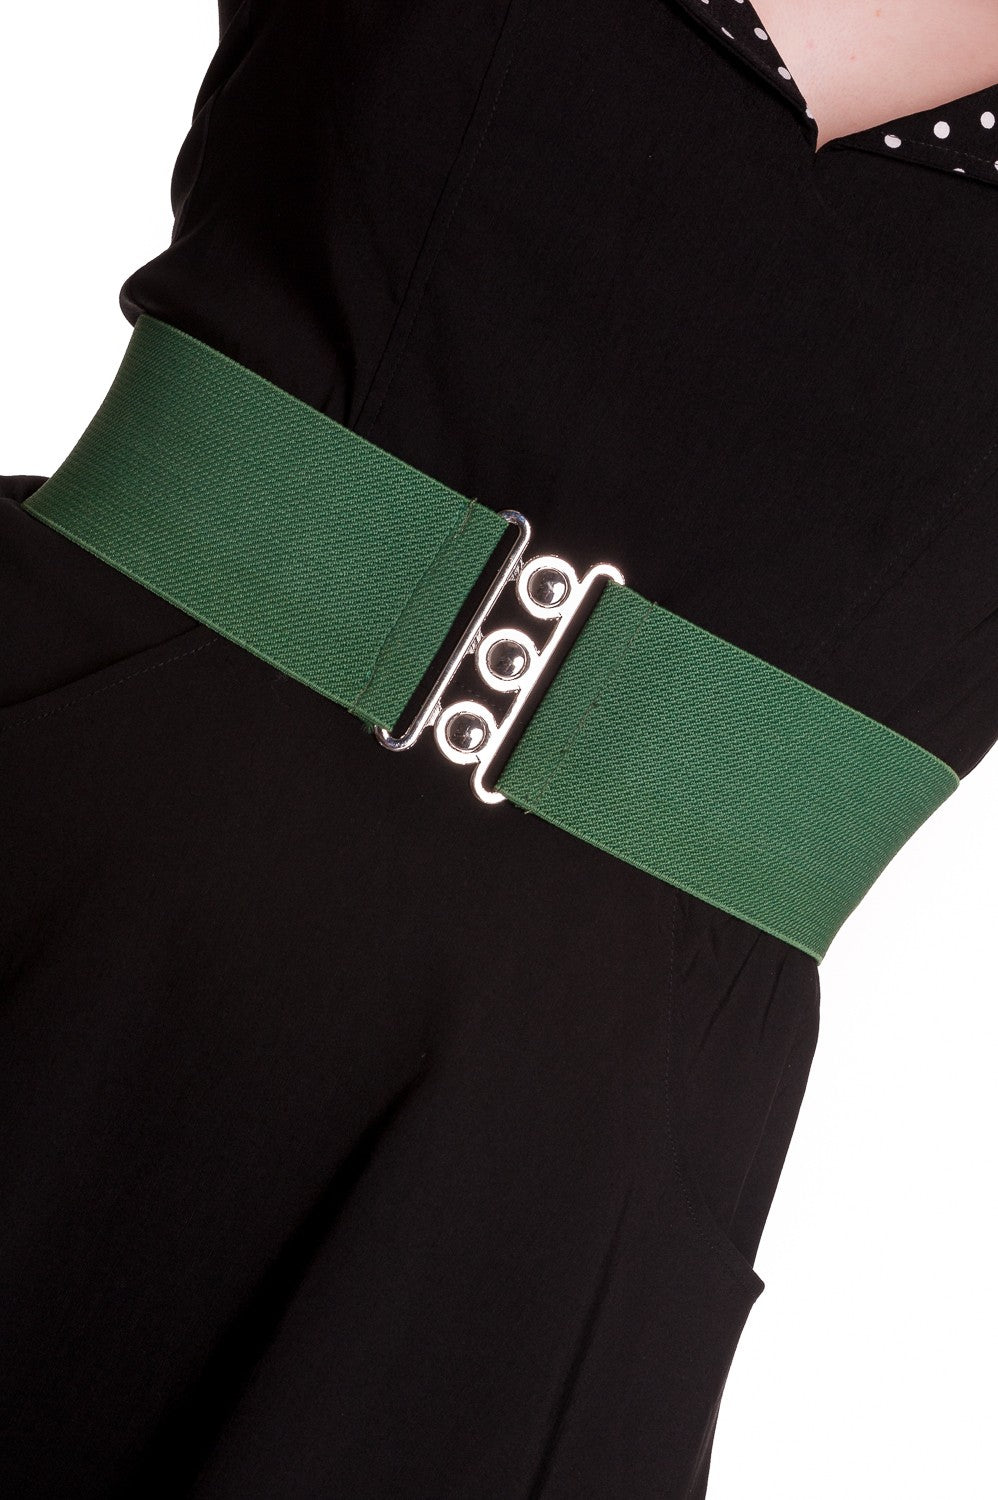 Green Elastic Belt - Vivacious Vixen Apparel